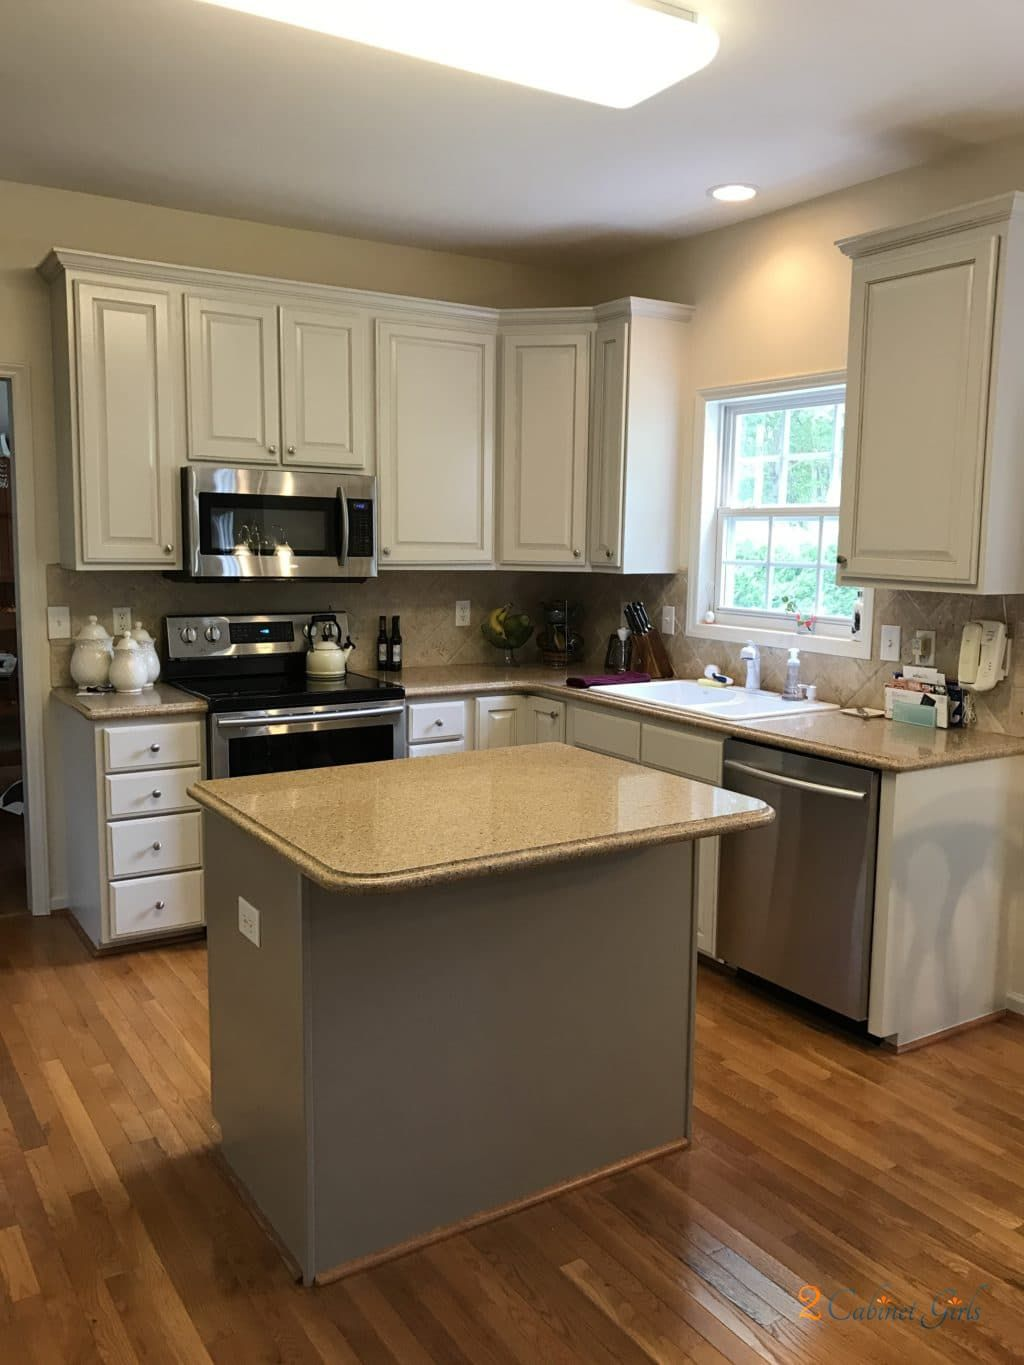 My Homeowner Loves The Look Of Cream Toned Cabinets With Soft Smudged Pinstripe Glaze But Since Her Grey Kitchen Walls Beige Kitchen Greige Kitchen Cabinets